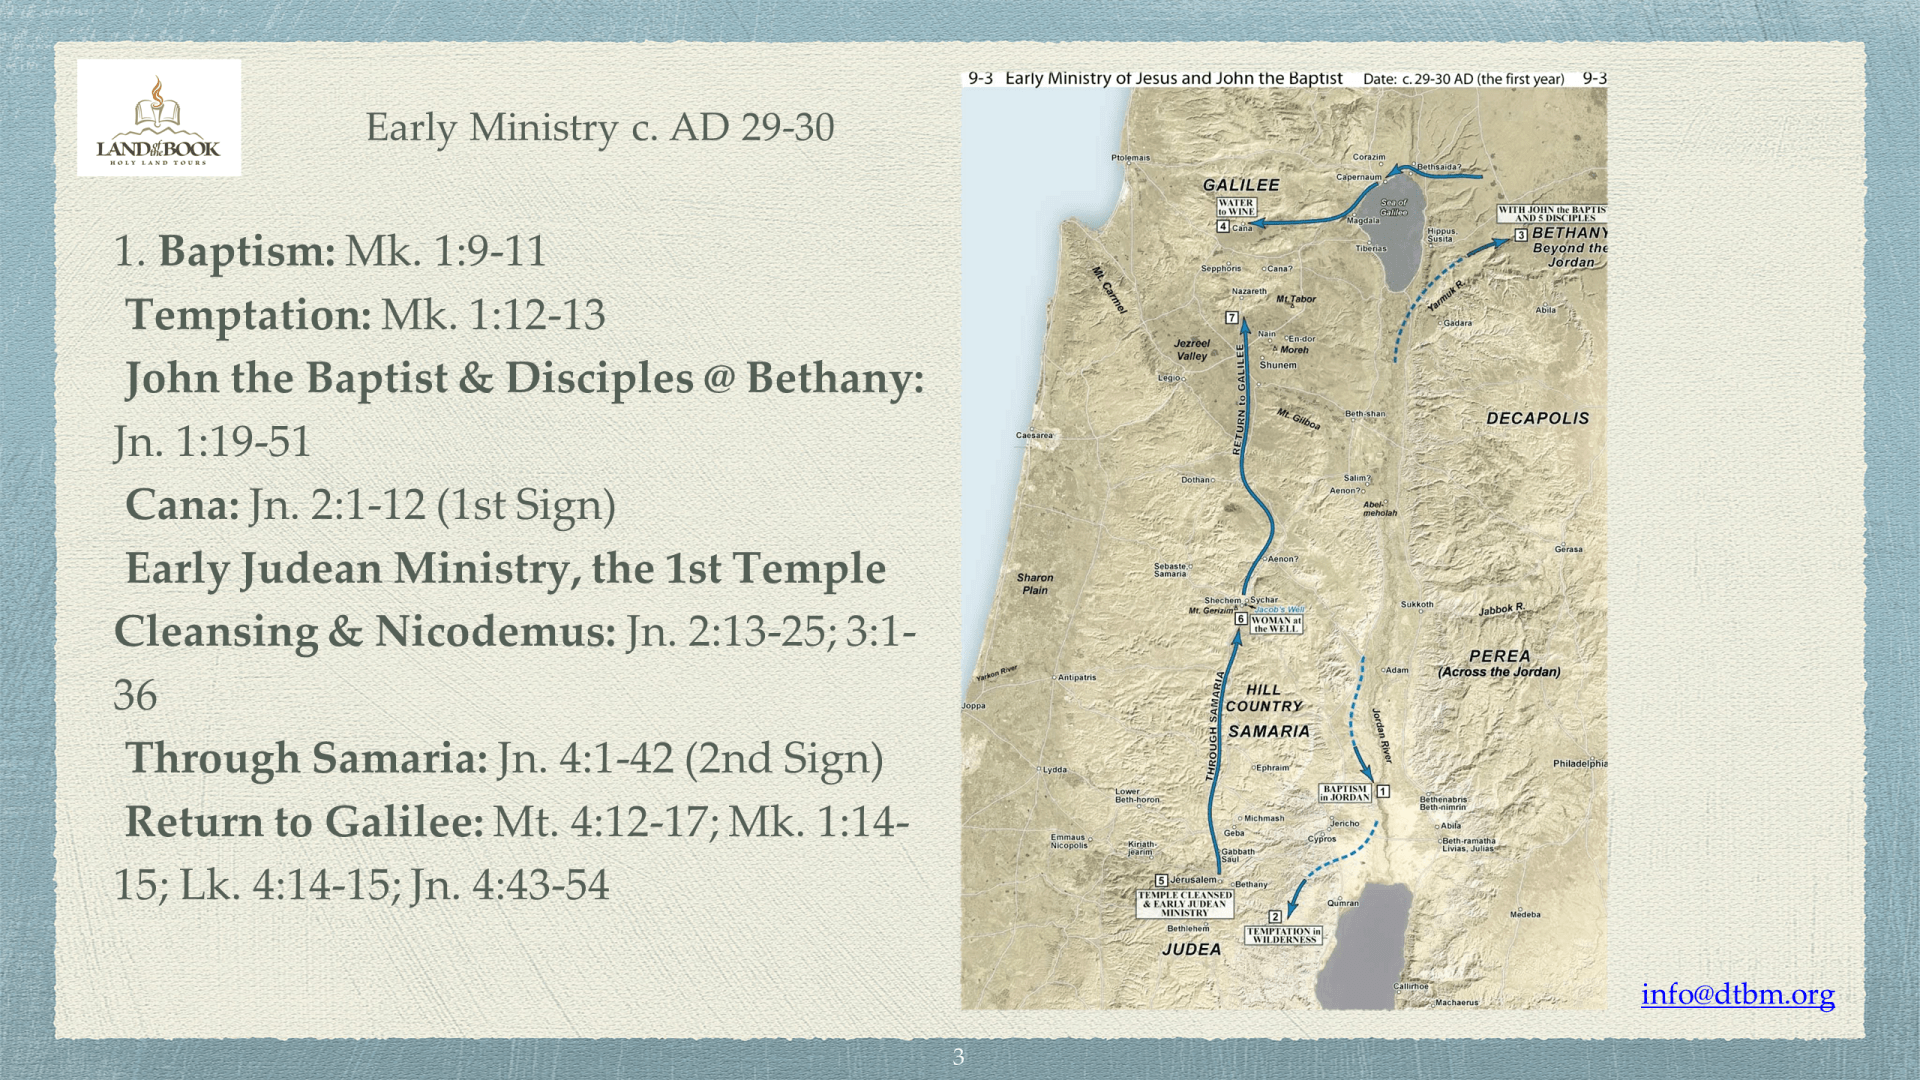 JET-03 - A Jet Tour Through Christ's Life in the Gospels (3)